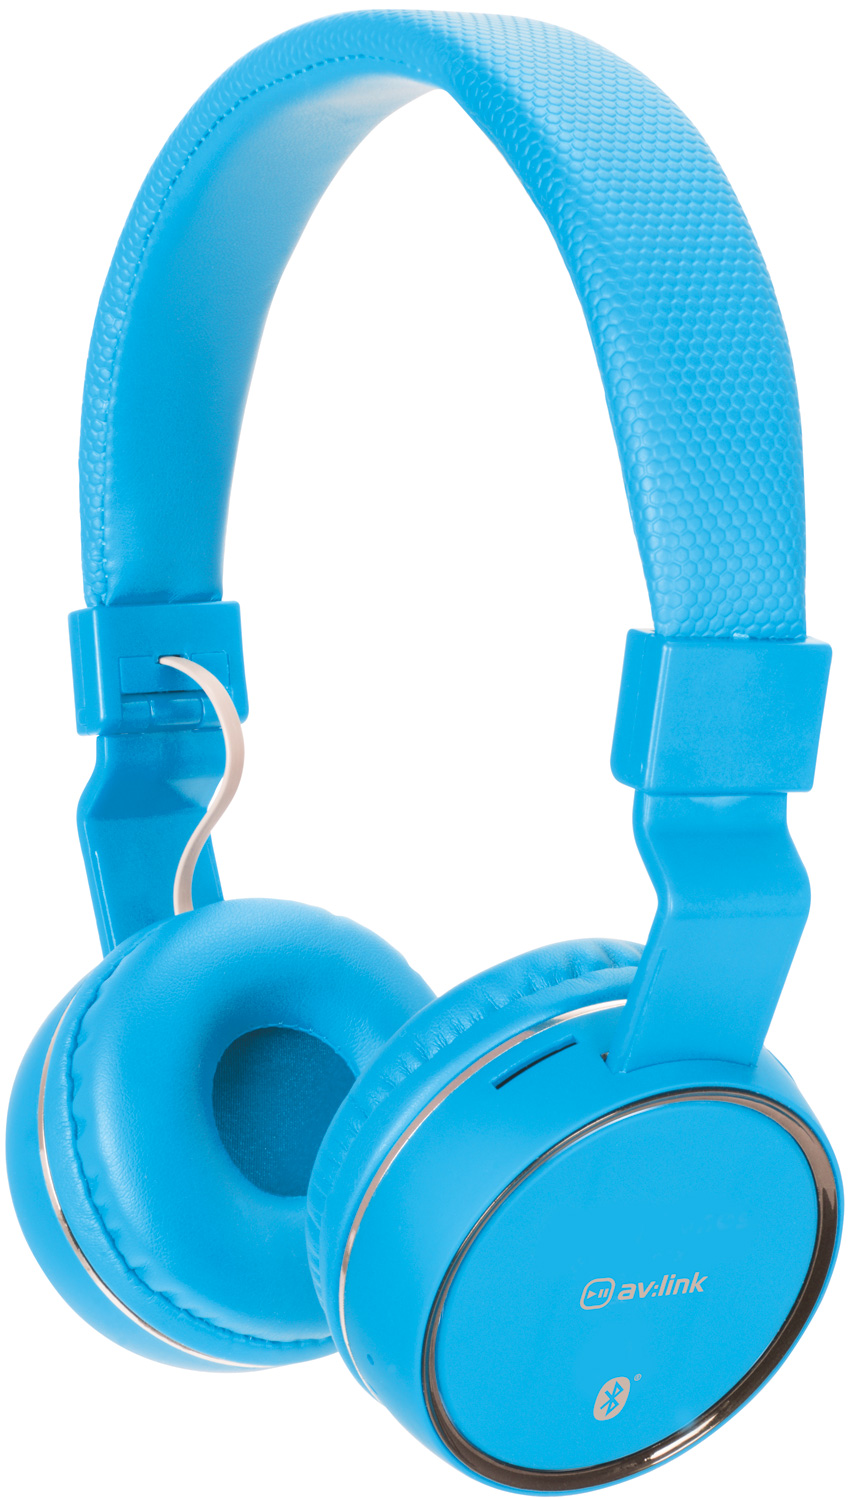 avlink Wireless Bluetooth® Headphones Blue